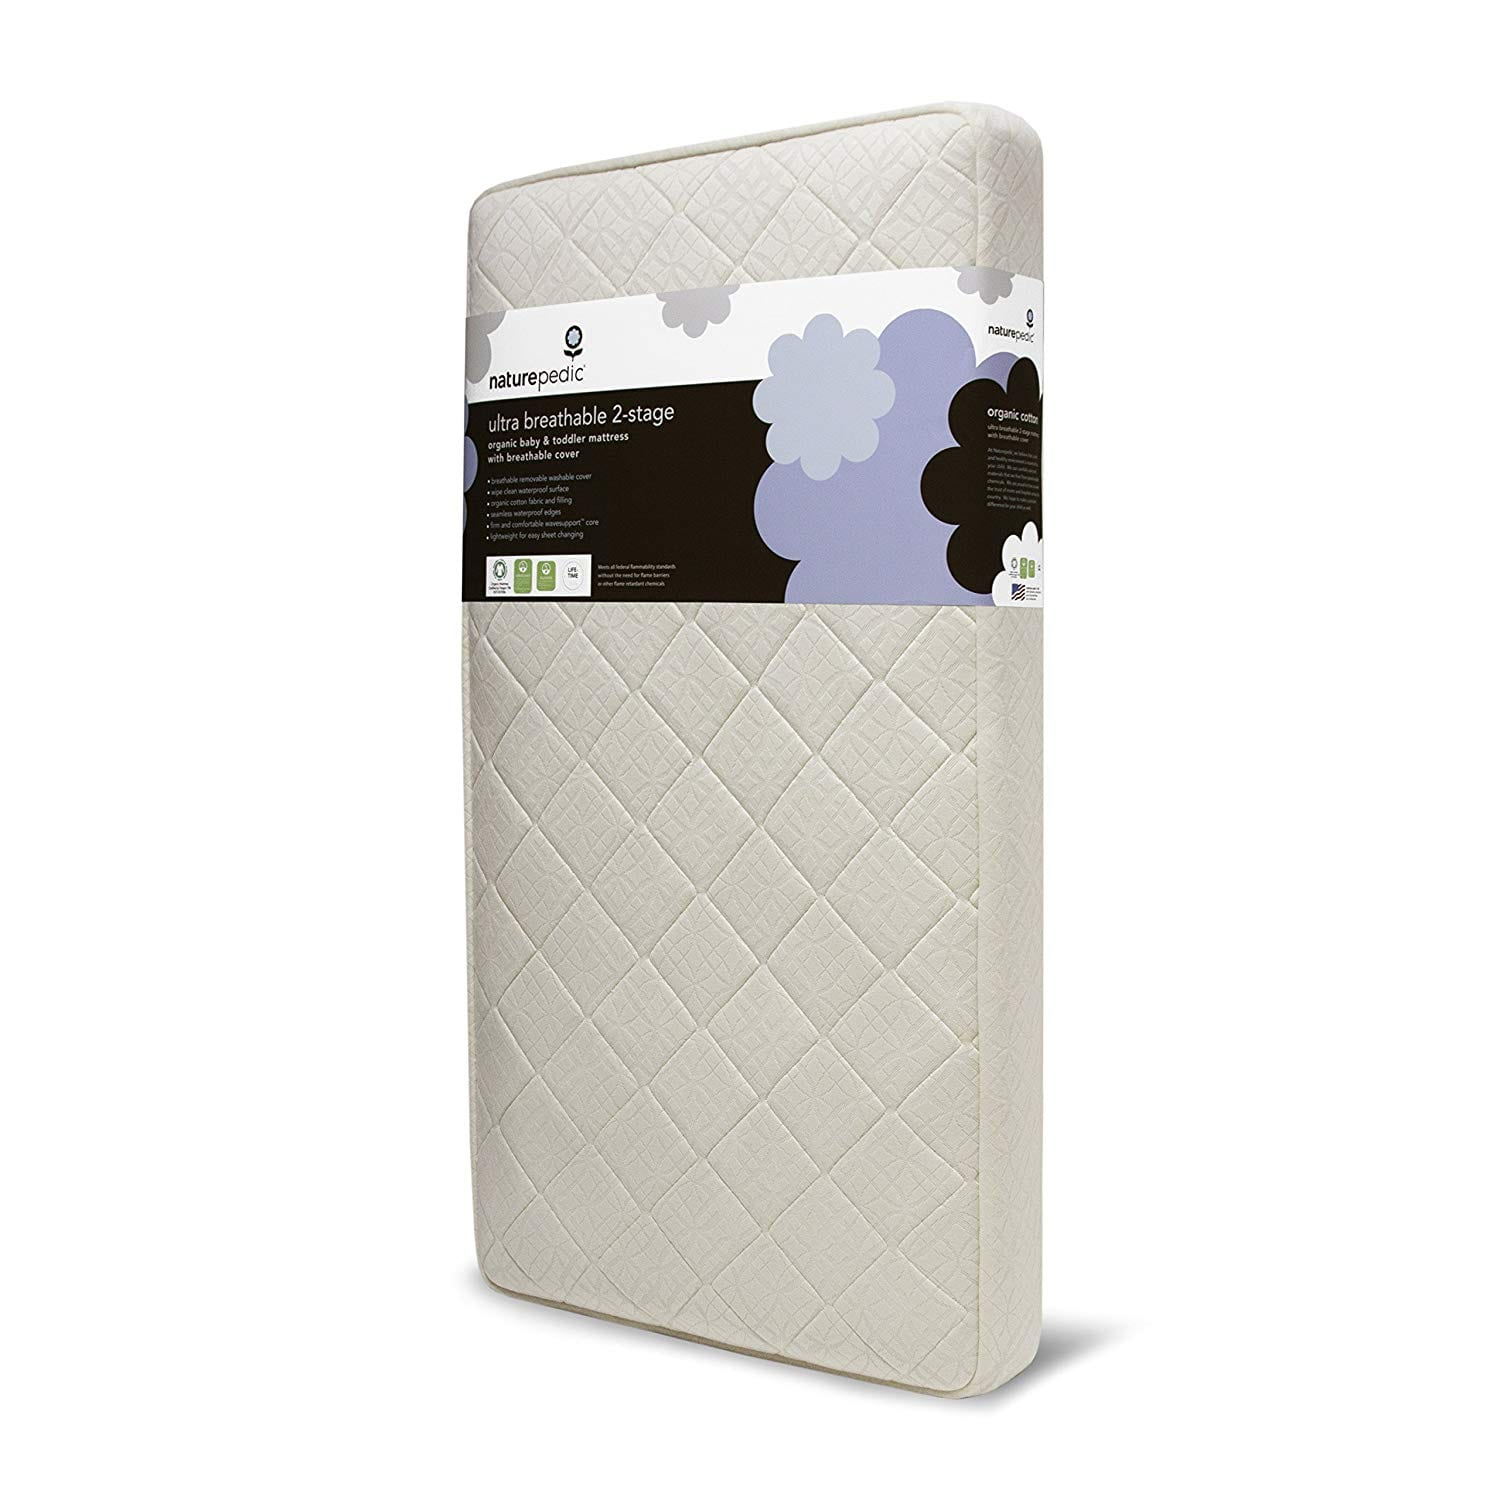 Naturepedic Best Crib Mattress Reviews by www.snoremagazine.com